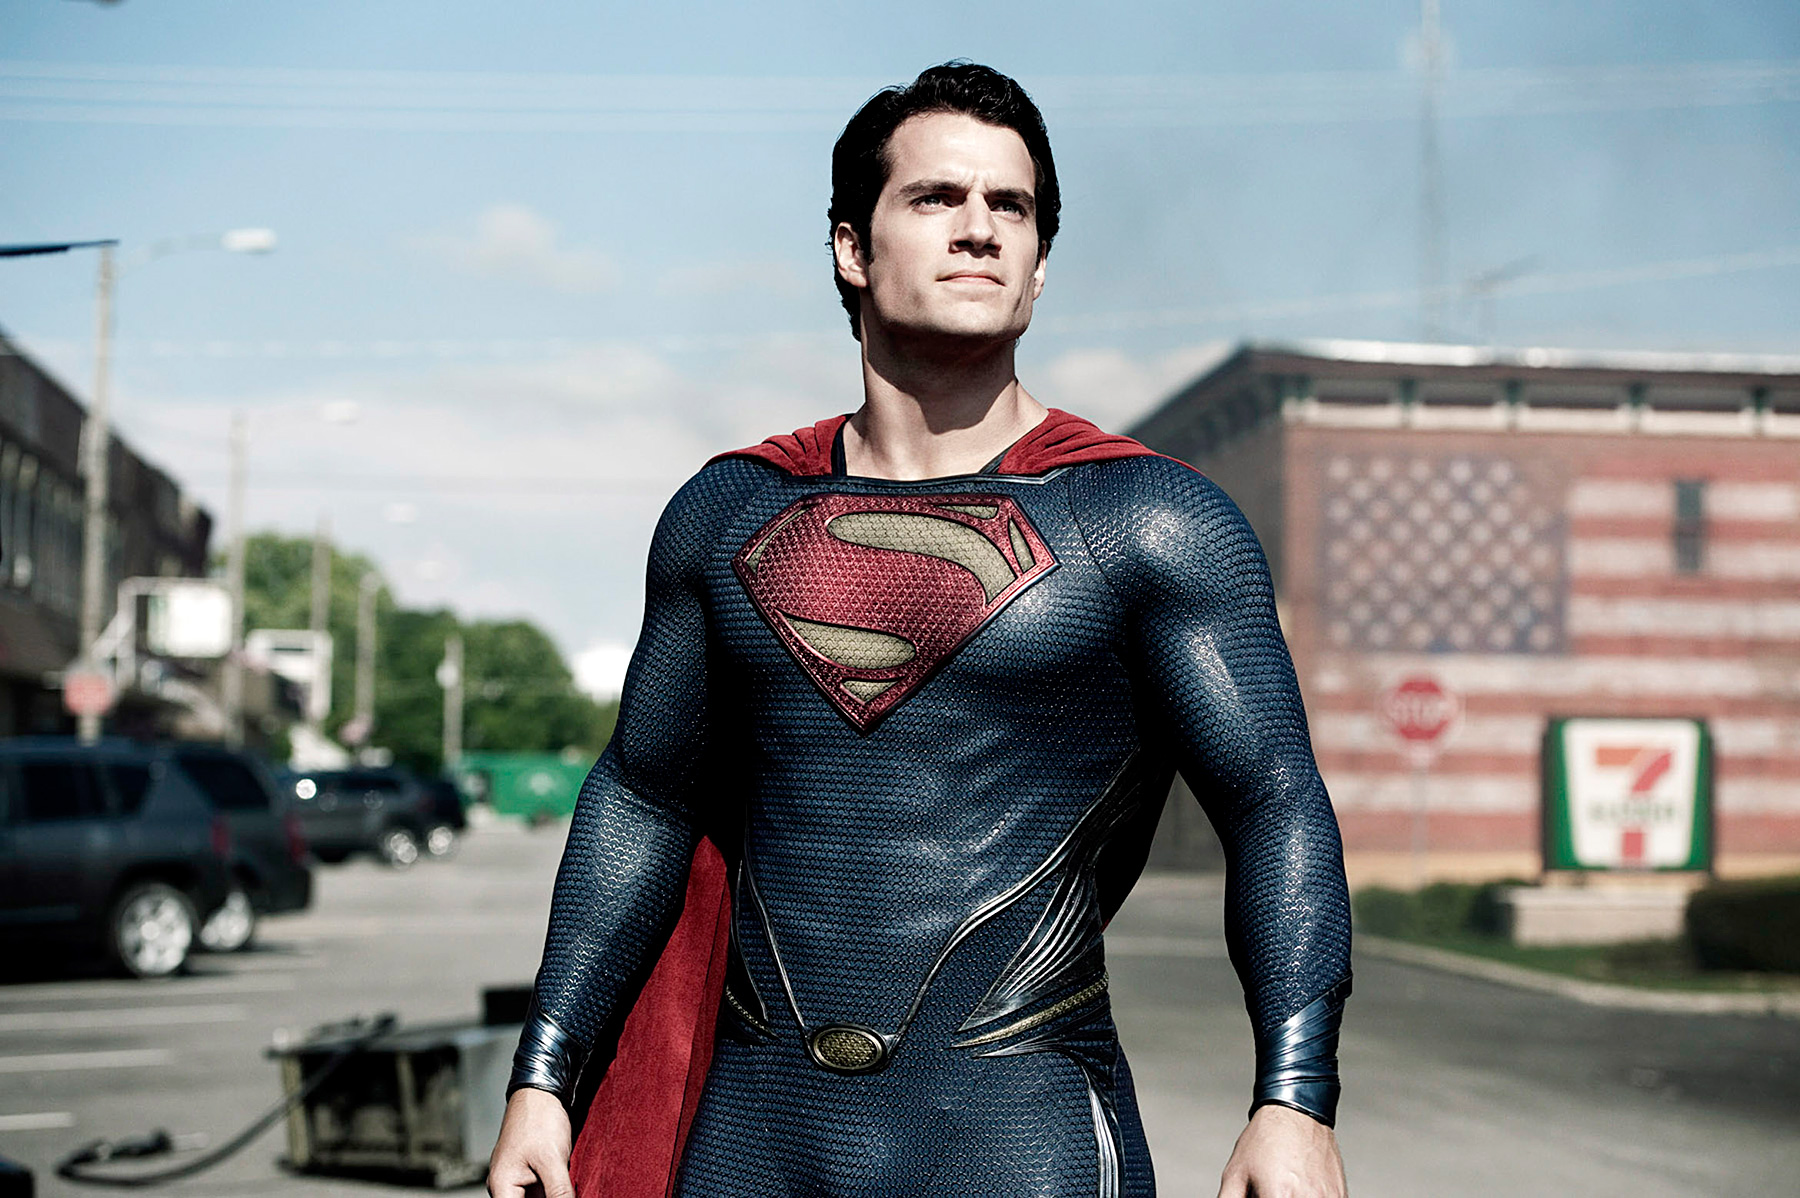 It's a bird, it's a plane, it's The Tudors star Henry Cavill!